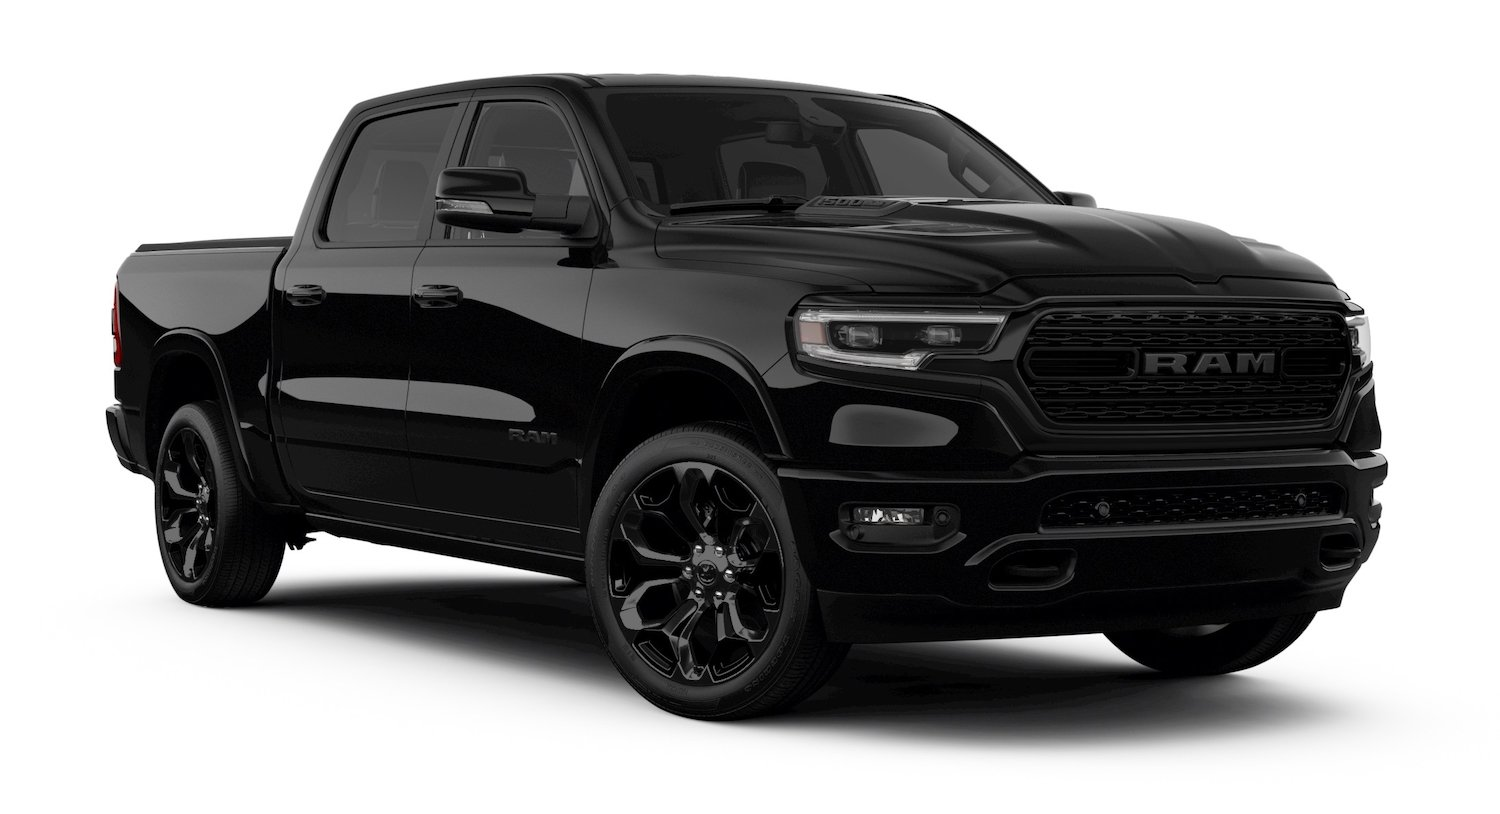 2020 Ram 1500 Limited Black Edition Delivers Stealth Weath